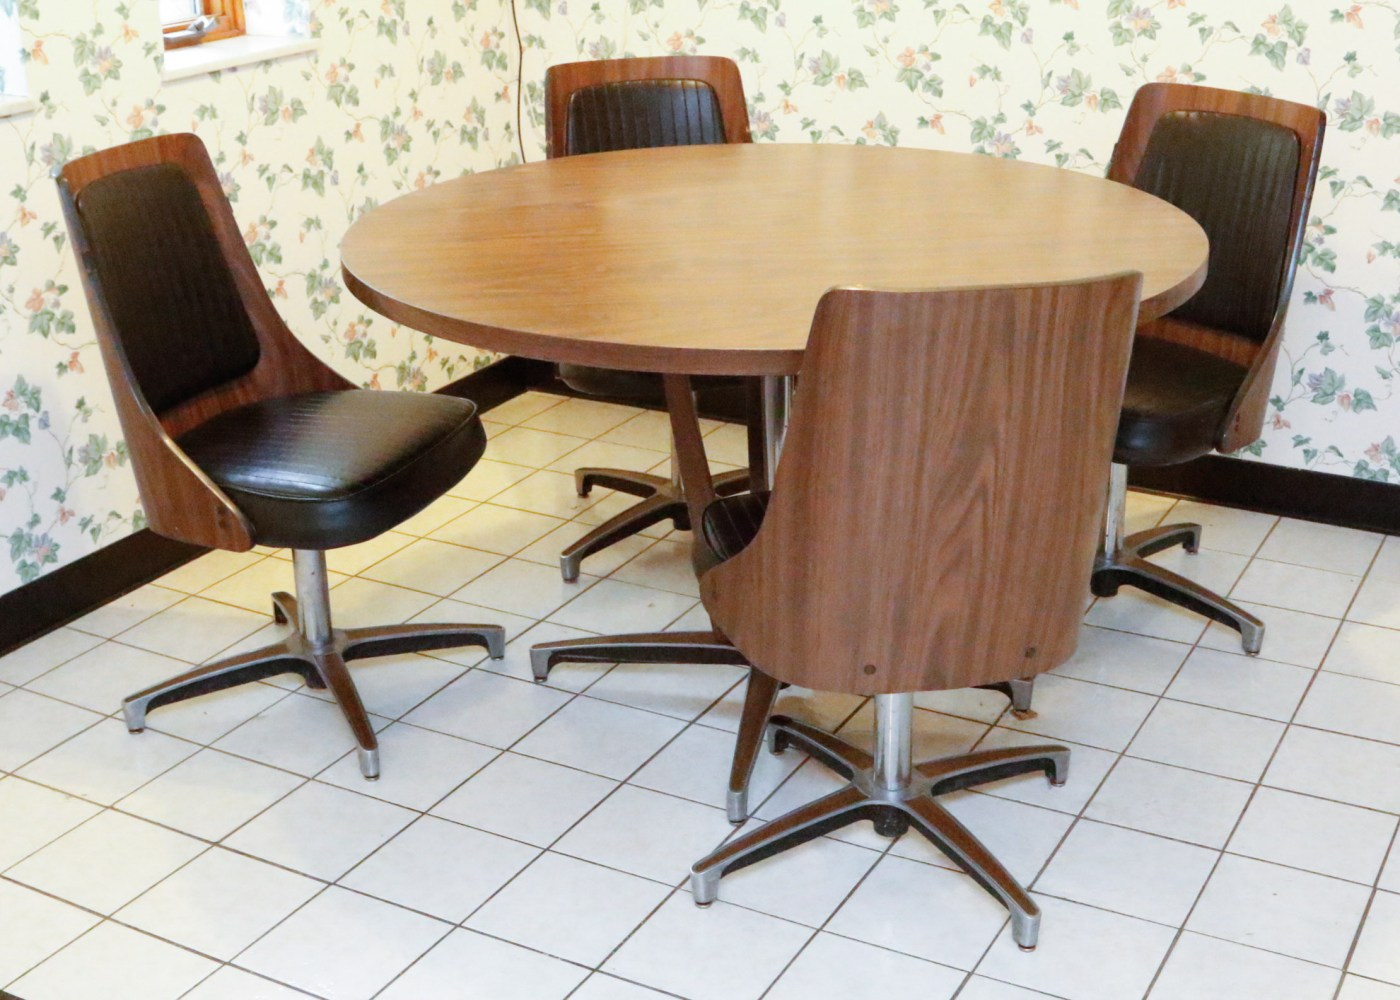 Chromcraft Dining Chairs Chromcraft Table And Chairs Dinette Set Ebth